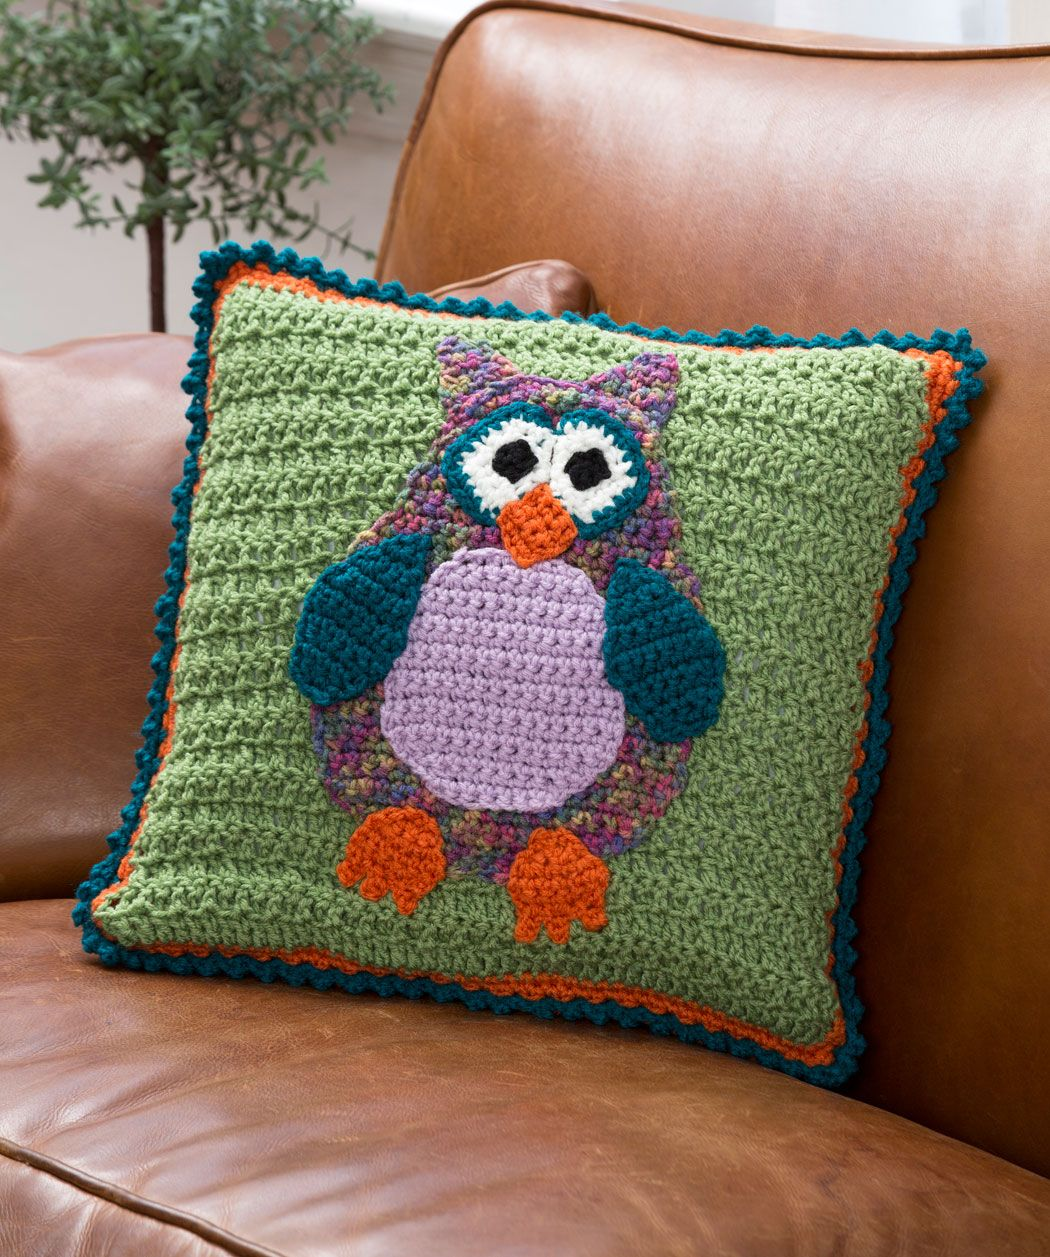 Whimsical Owl Pillow Crochet Pattern | Red Heart | Knit and Crochet ...